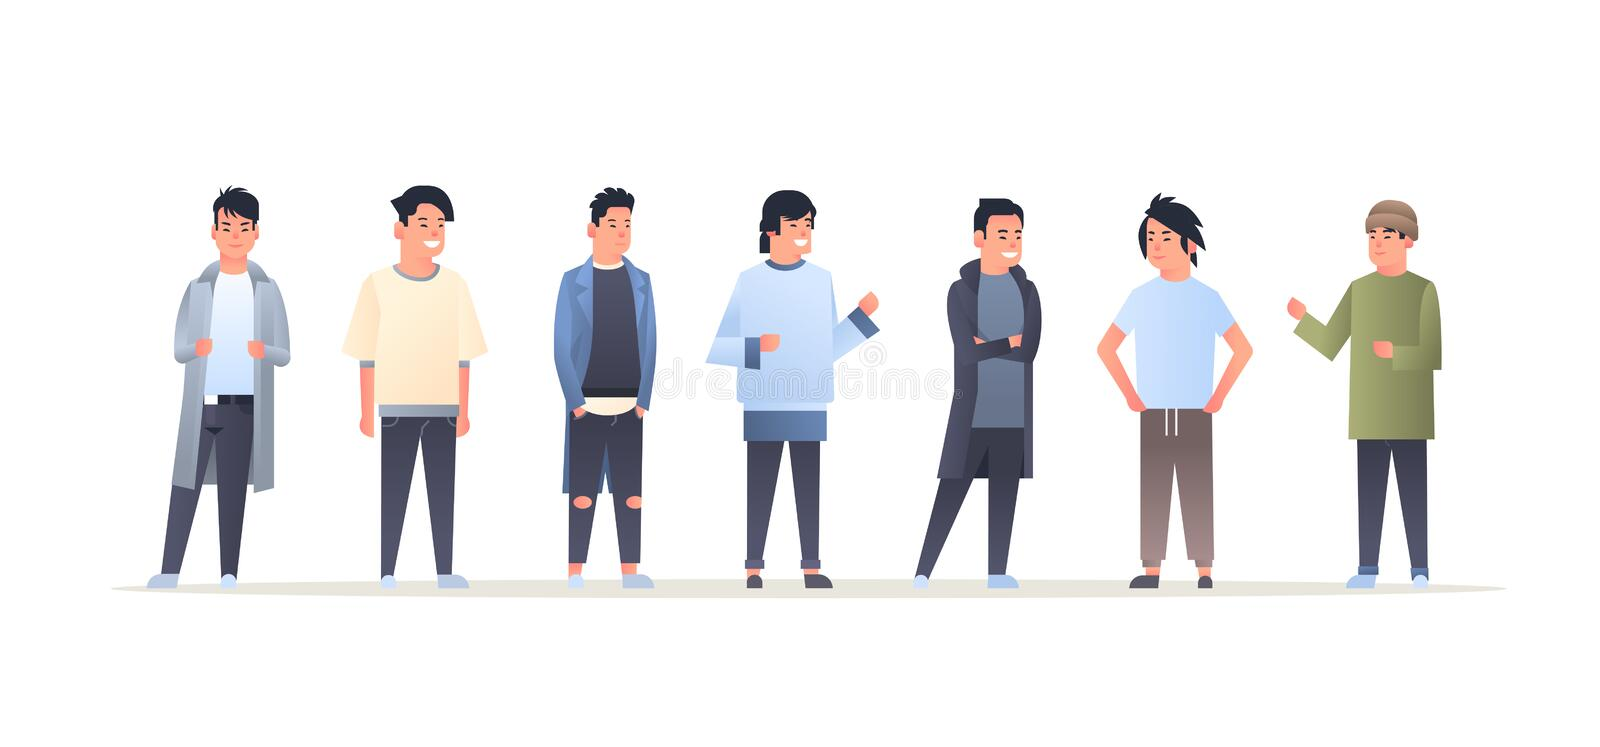 Young asian men group wearing casual clothes happy attractive guys standing together chinese or japanese male cartoon. Characters full length flat horizontal vector illustration